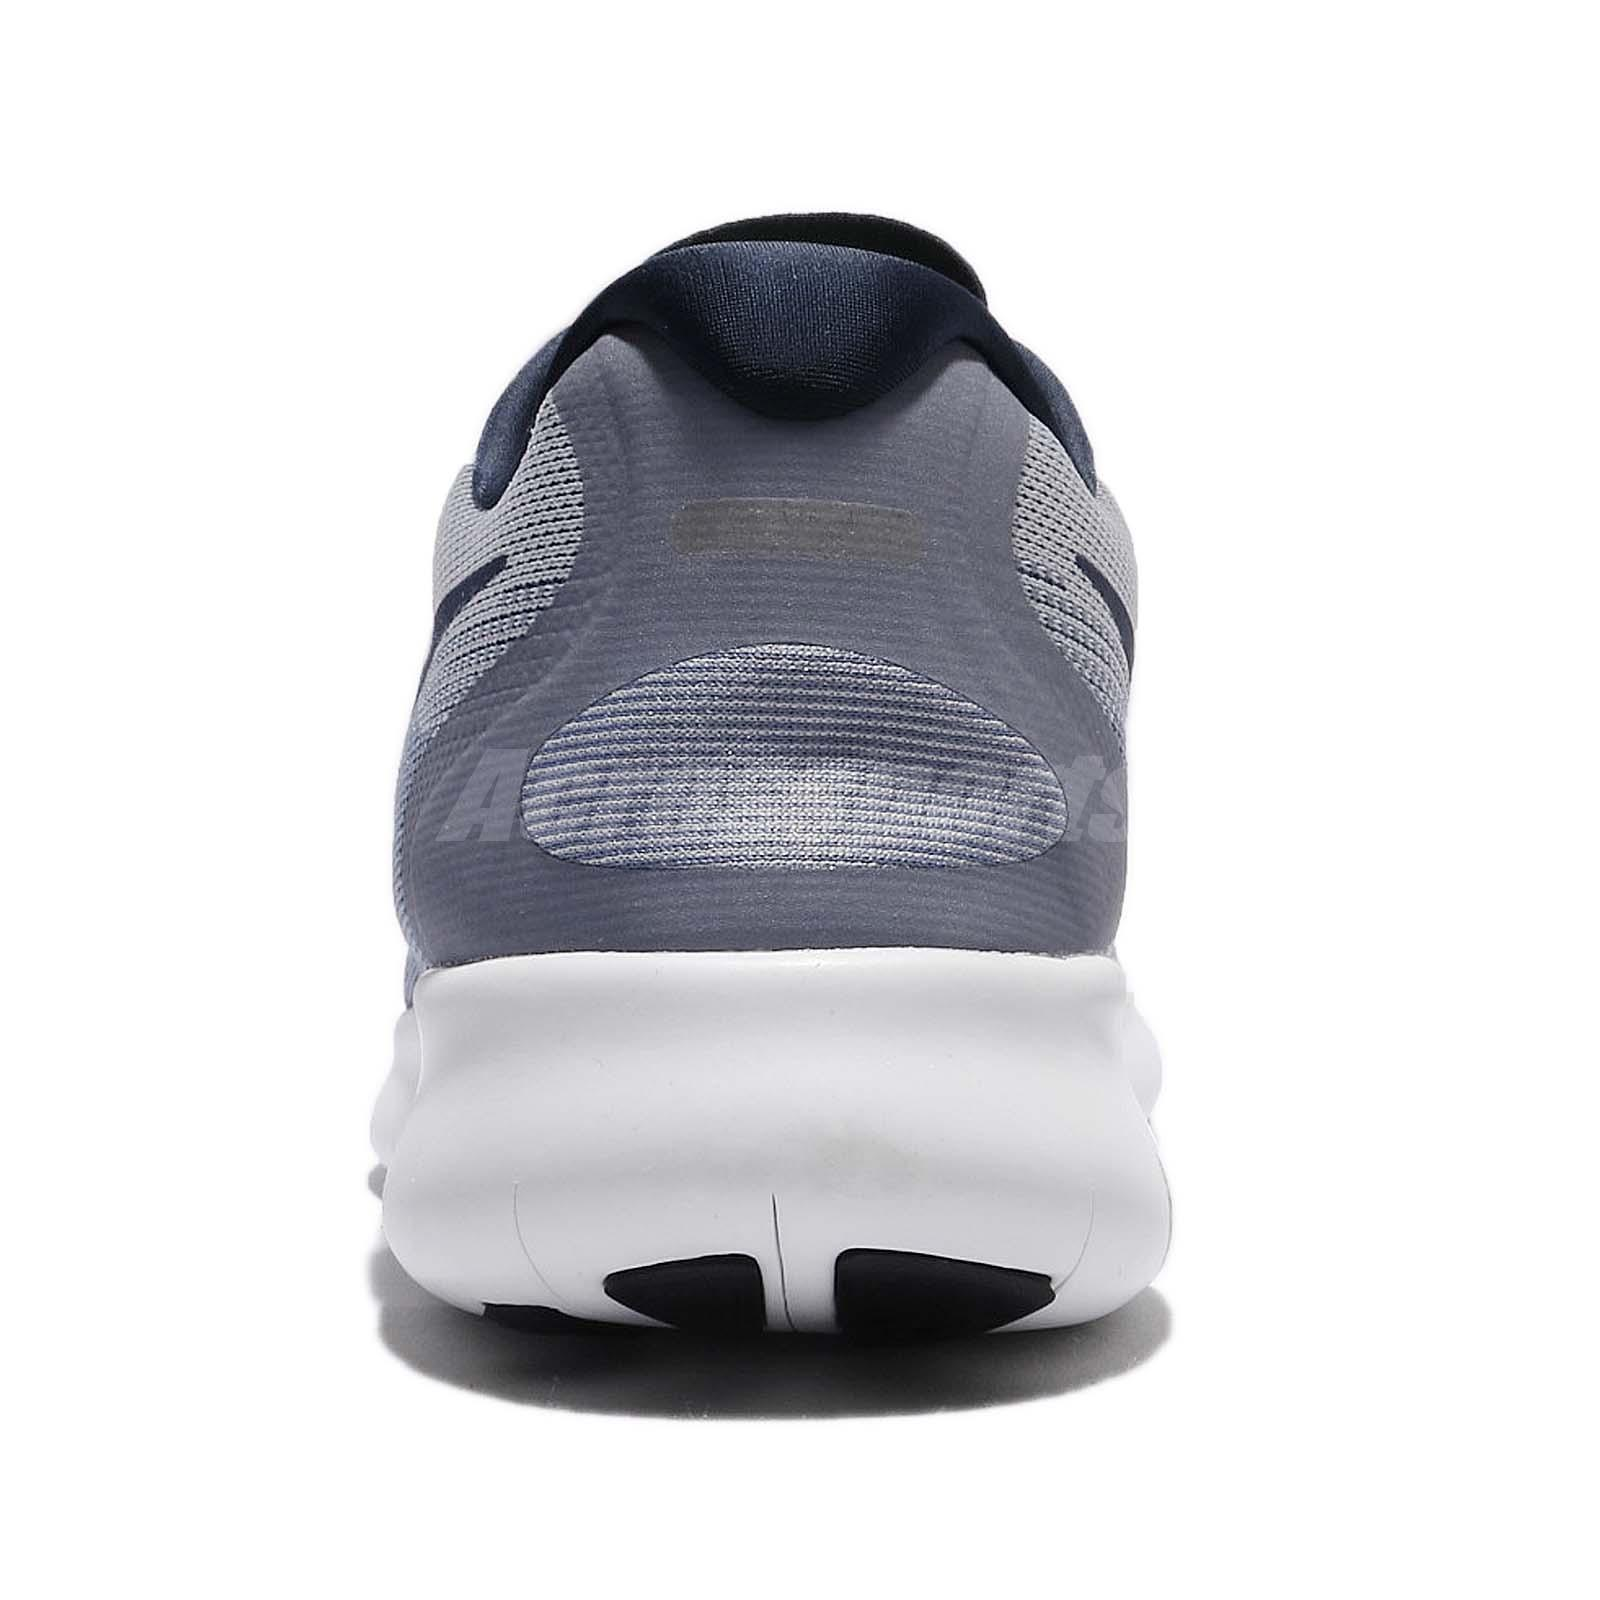 960059241d8 Nike Free RN 2017 Run Wolf Grey Blue Men Running Shoes Trainers ...